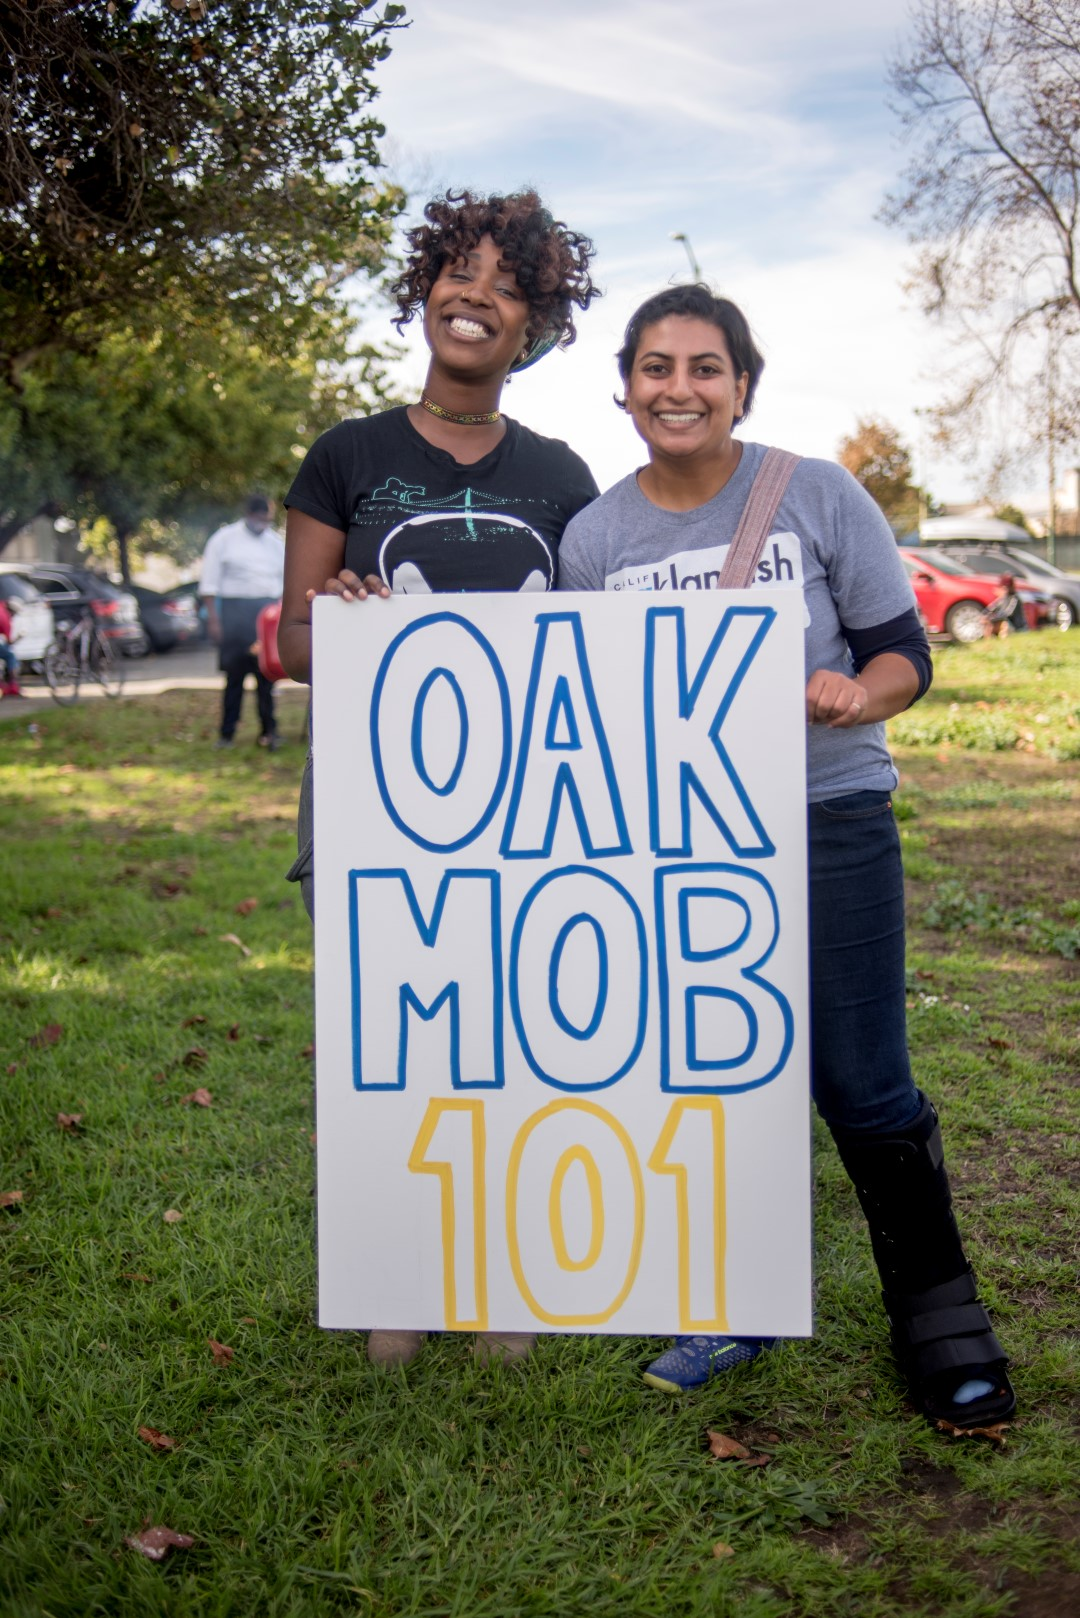 Image: Brytanee Brown and Anjali Mehta hold an OakMob101 sign. Photo: Pamela Palma Photography